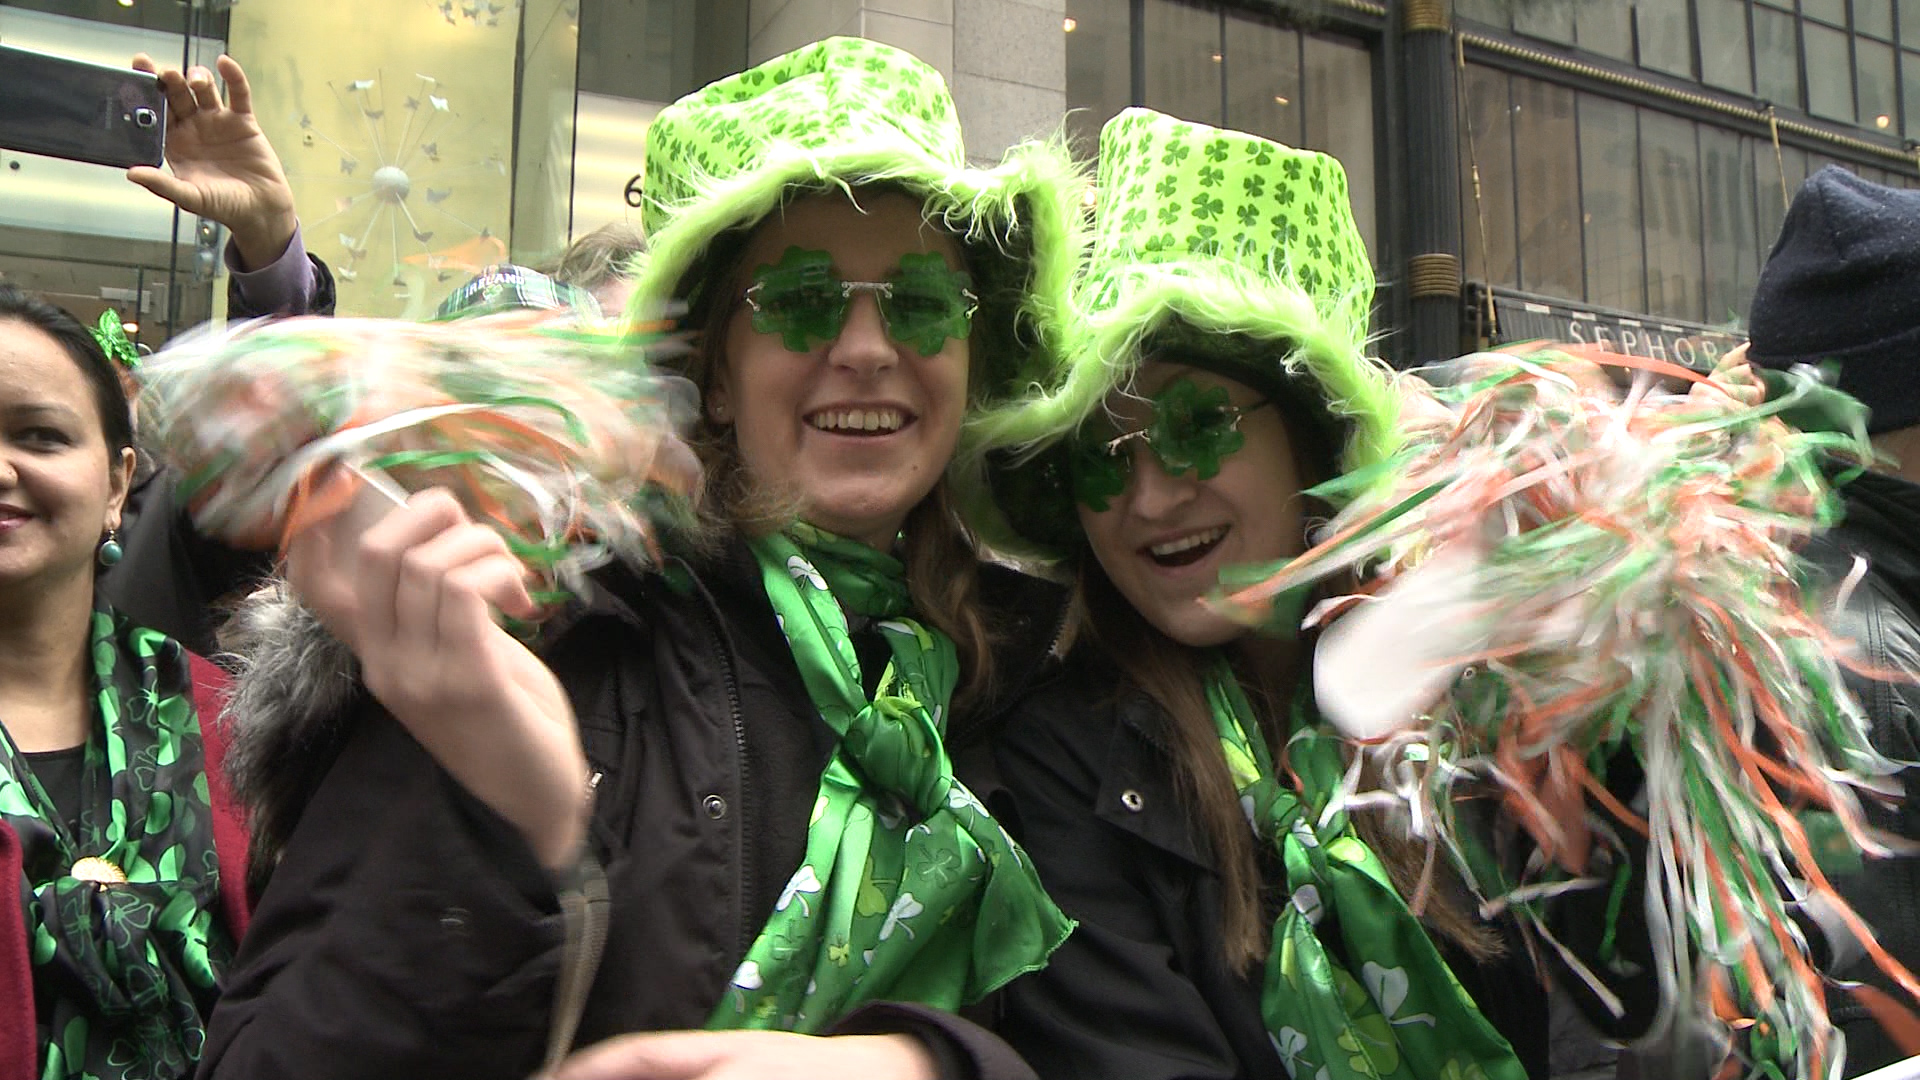 Crazy outfits at the New York City St. Patrick's Day Parade